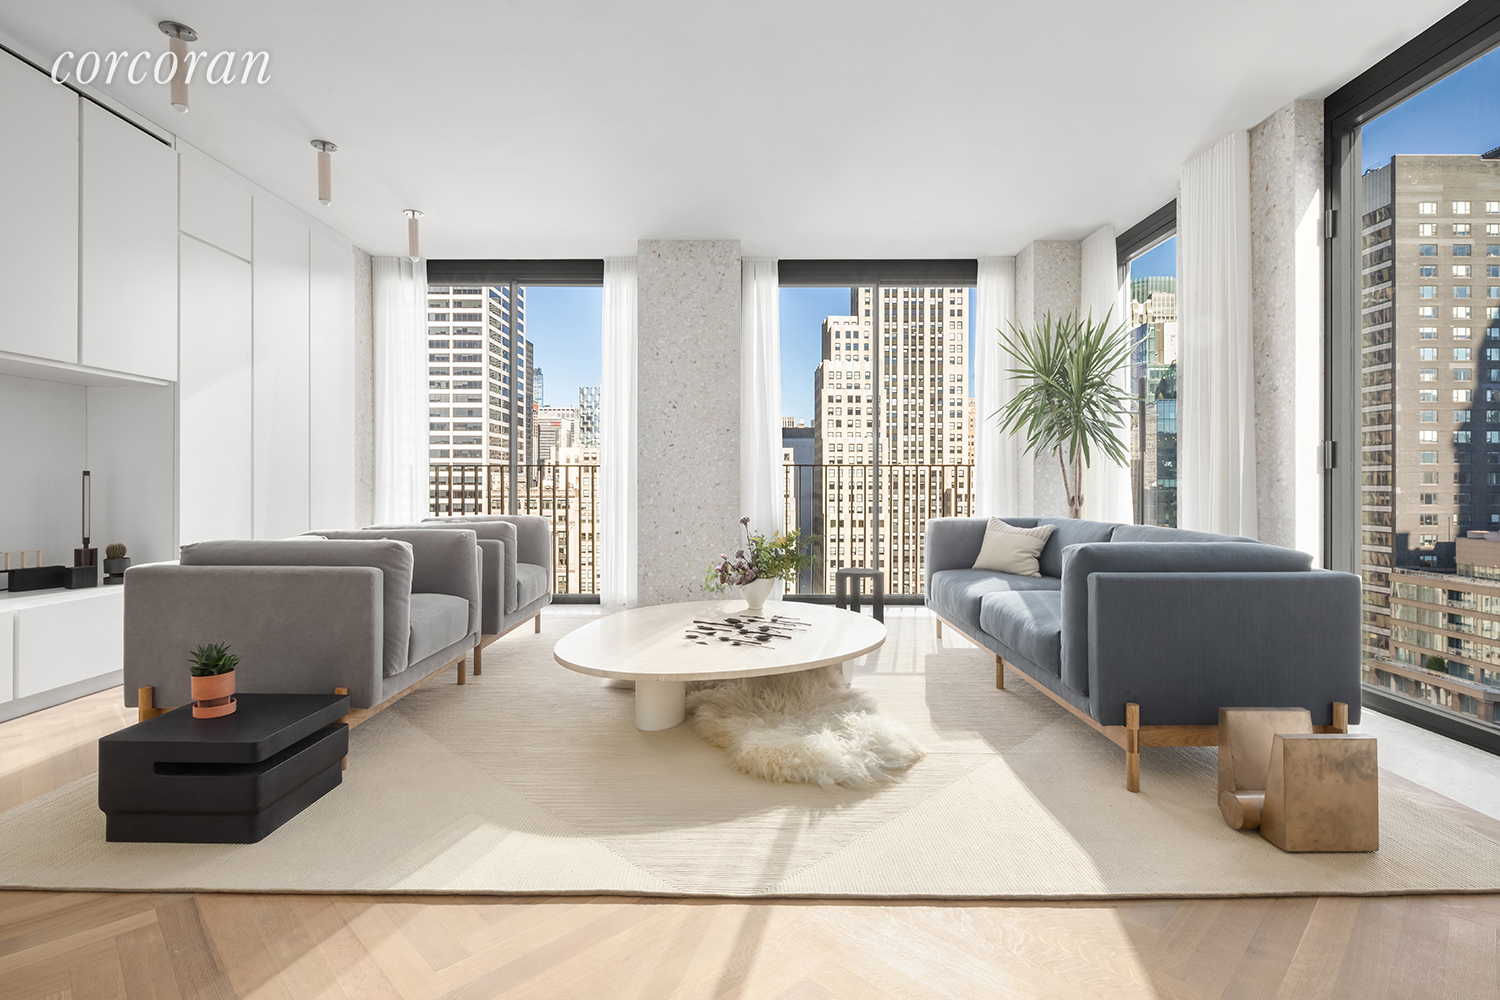 The Bryant is pleased to welcome you back and is now available for private in-person appointments with new health and safety standards.  Please contact the sales team for a virtual first appointment and in-person follow up appointments.  Located high above vibrant Bryant Park in the heart of New York City, this David Chipperfield-designed floor-through two bedroom (possible 3 bed) residence with a windowed study boasts twenty two floor-to-ceiling windows wrapping three exposures. At 1,882 square feet (174.8 sq. m.), this home offers an expansive floorplan with an abundance of natural light and incomparable views of Bryant Park and the Empire State Building through Vitrocsa sliding glass doors with Juliet balconies. The custom terrazzo facade transitions seamlessly to the interiors, creating crisp architectural frames to the windows and a border for the heated oak herringbone floors. The residence's bespoke millwork cleverly conceals storage, appliances and mechanical systems, allowing continuous, full 9' 6' inch ceiling heights to carry throughout the residence. The open kitchen includes a Gaggenau cooktop with fully-vented hood, oven, speed oven, dishwasher, and refrigerator/freezer. The master bedroom with direct Empire State Building and city views includes a windowed en-suite bath featuring full-height Statuarietto marble walls, double vanity with marble top, and separate water closet and wet room with rain shower, both enclosed behind custom Bendheim glass doors. The secondary bath and powder room are also appointed with Statuarietto slab marble walls and vanity. Residences at The Bryant, located at 16 West 40th Street, sit atop a luxury boutique hotel. Amenities include 24-hour attended private residential lobby, lobby lounge, fitness center with sauna, Terrace Club with fireplace and full bar overlooking Bryant Park, and a full suite of a la carte hotel services including housekeeping and room service. Immediate Occupancy.